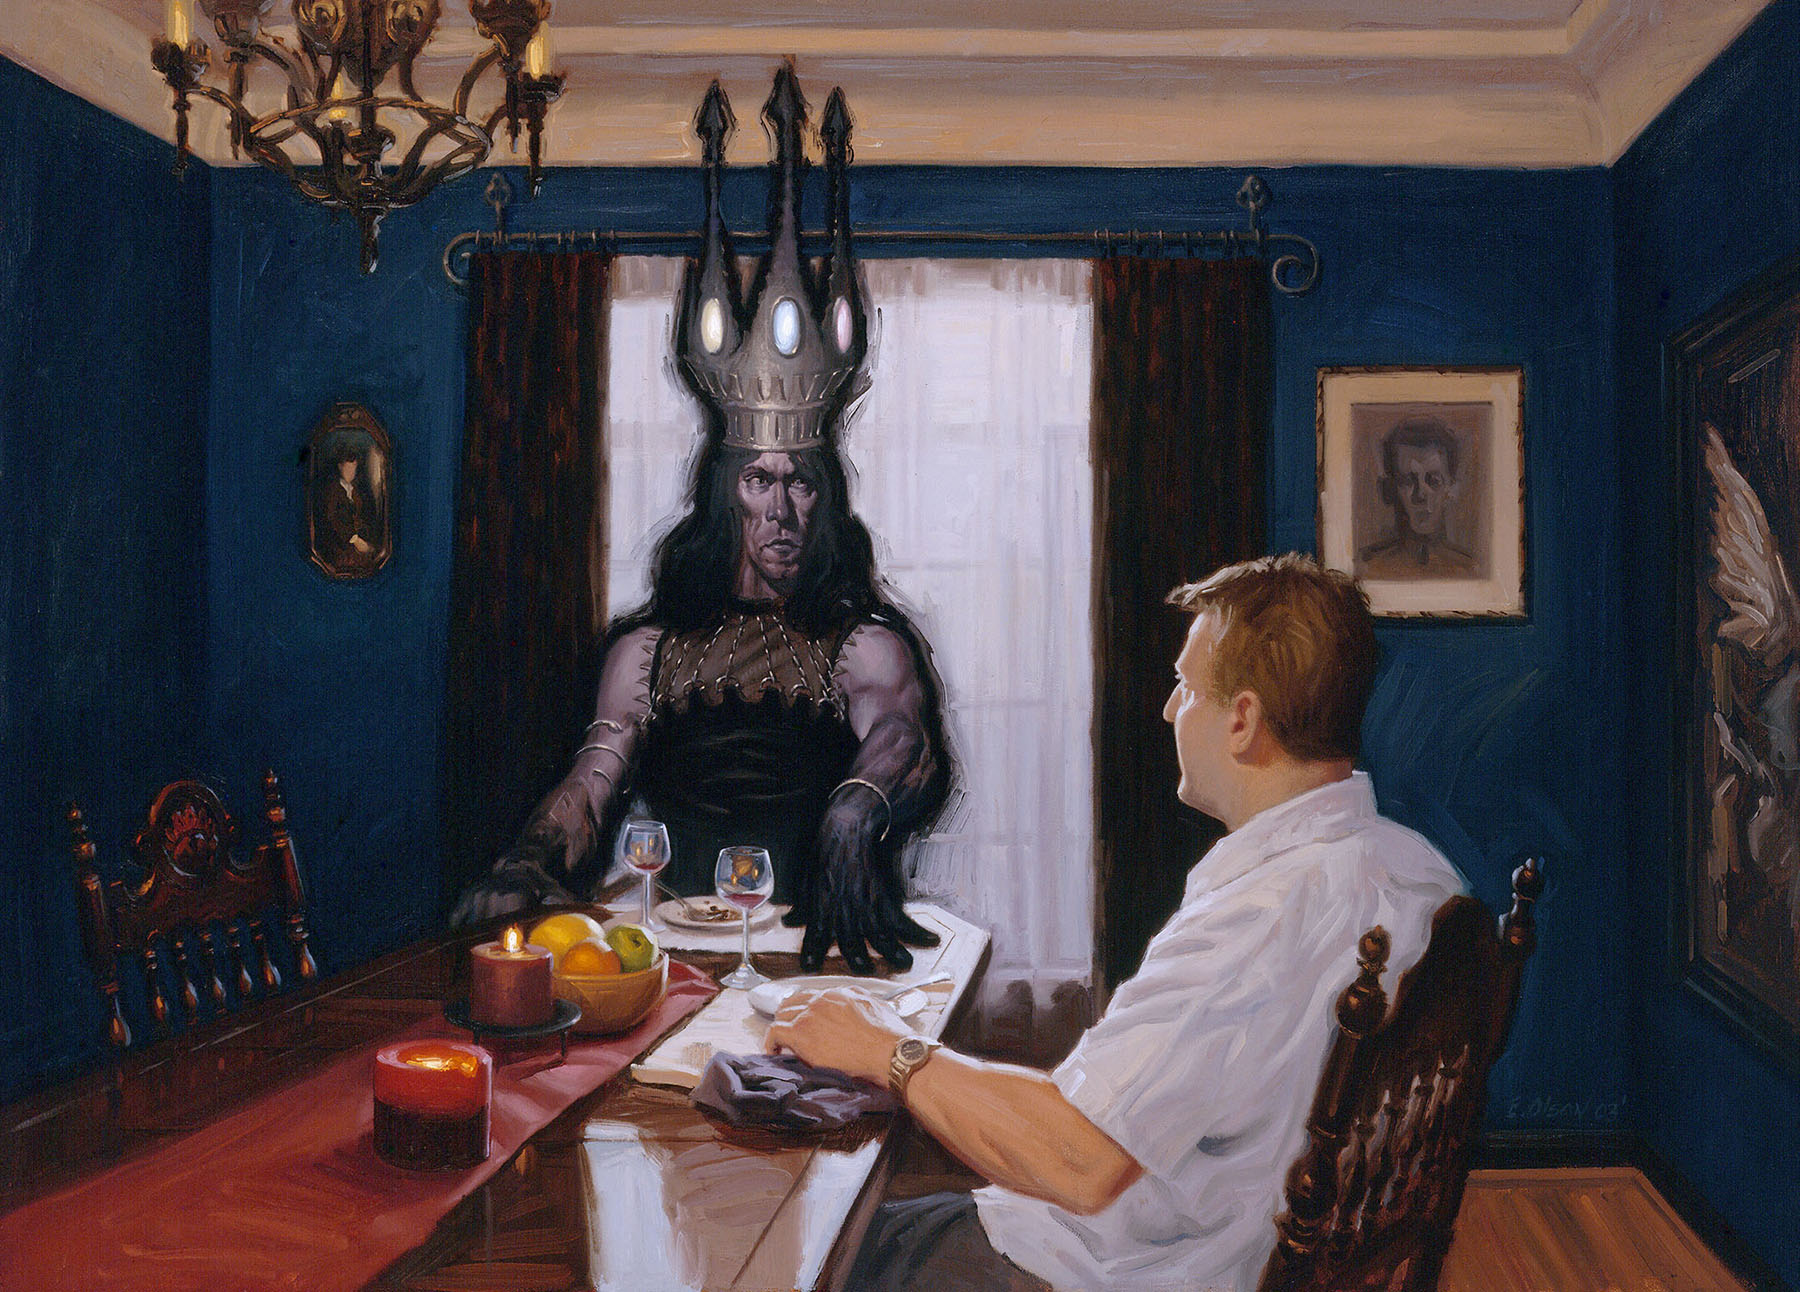 My Dinner With Morgoth